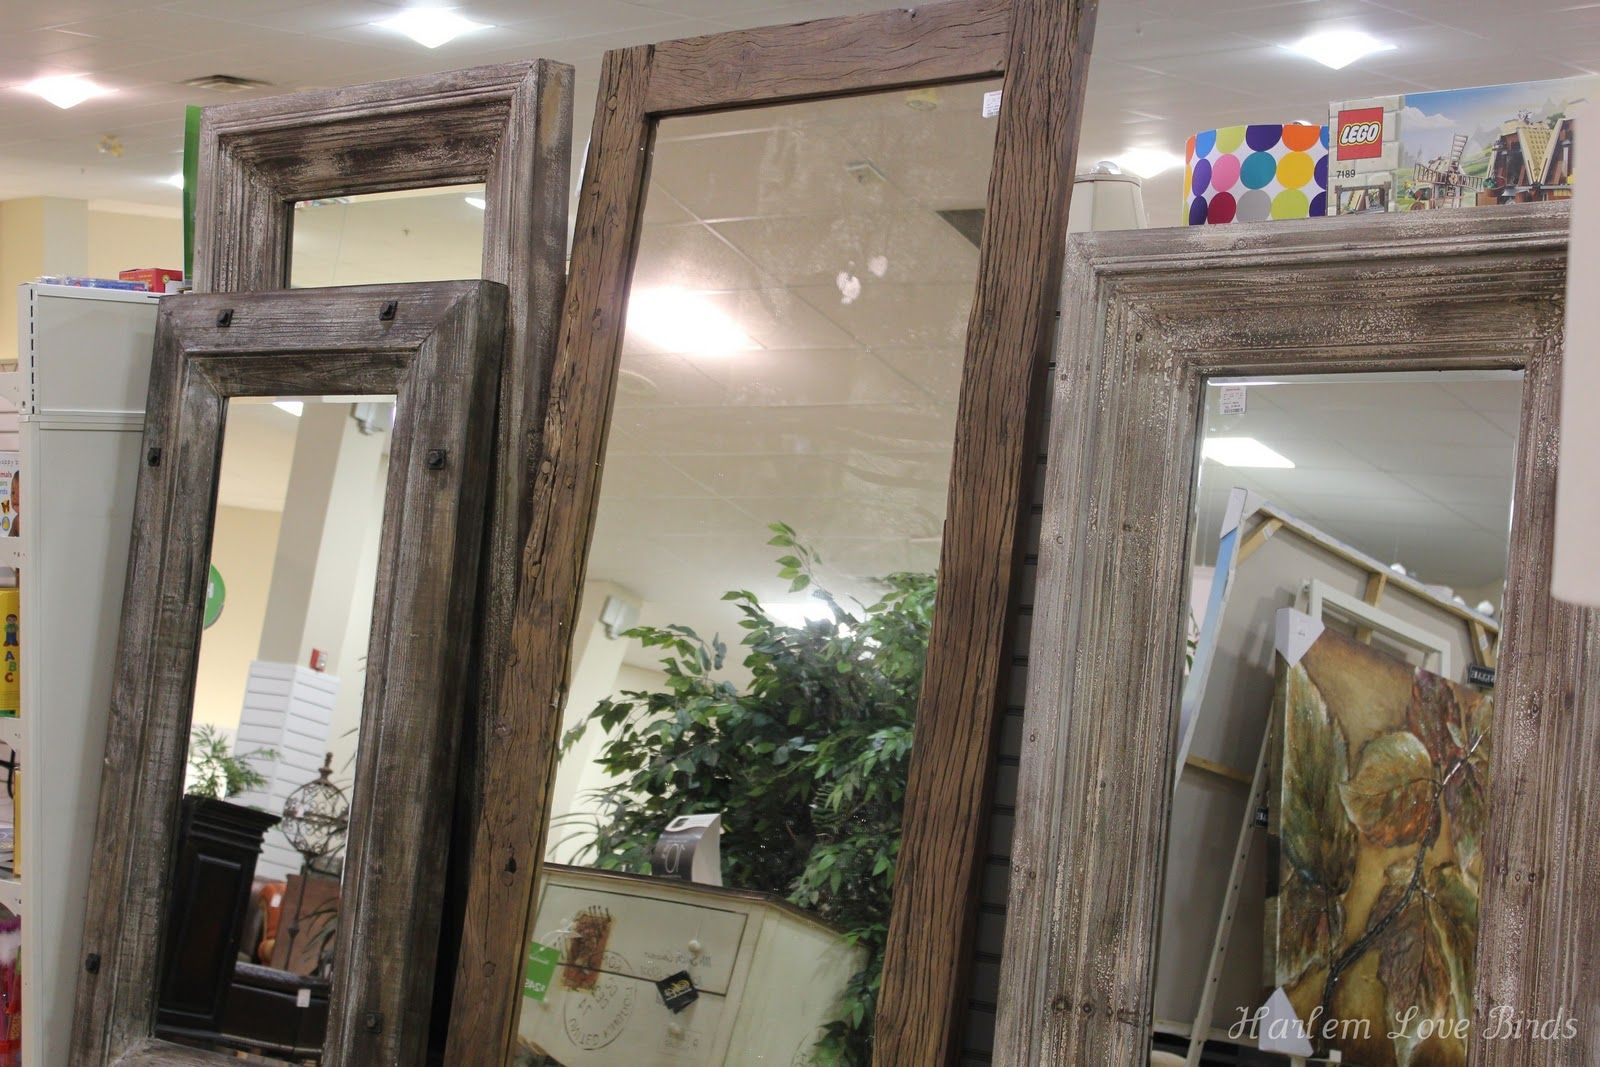 Harlem Love Birds Floor Length Mirrors Rustic Wood Floor Length Mirrors Home Home Goods